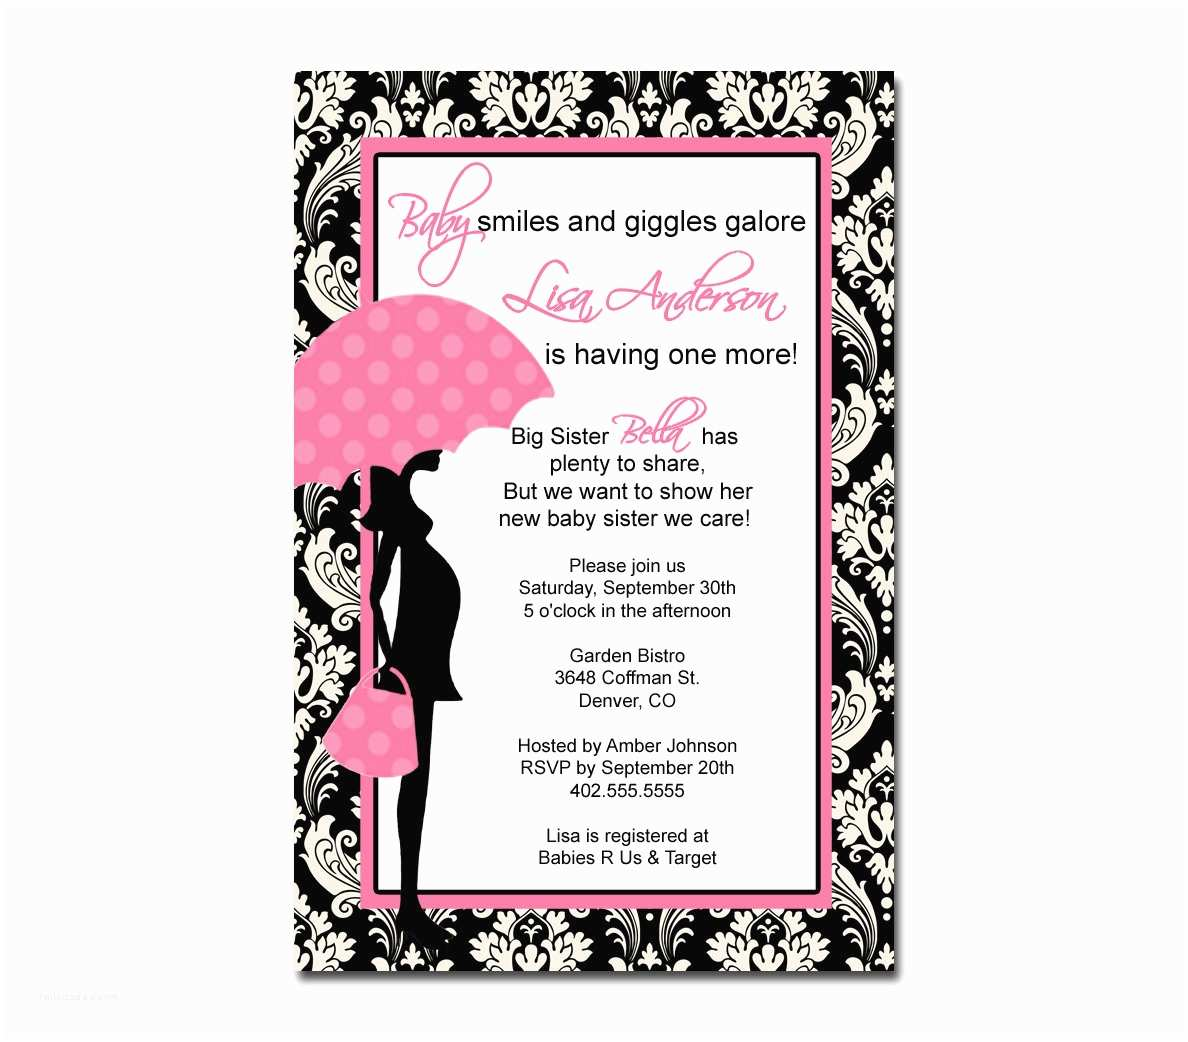 Black Baby Shower Invitations Pink and Black Baby Shower Invitation Various Invitation